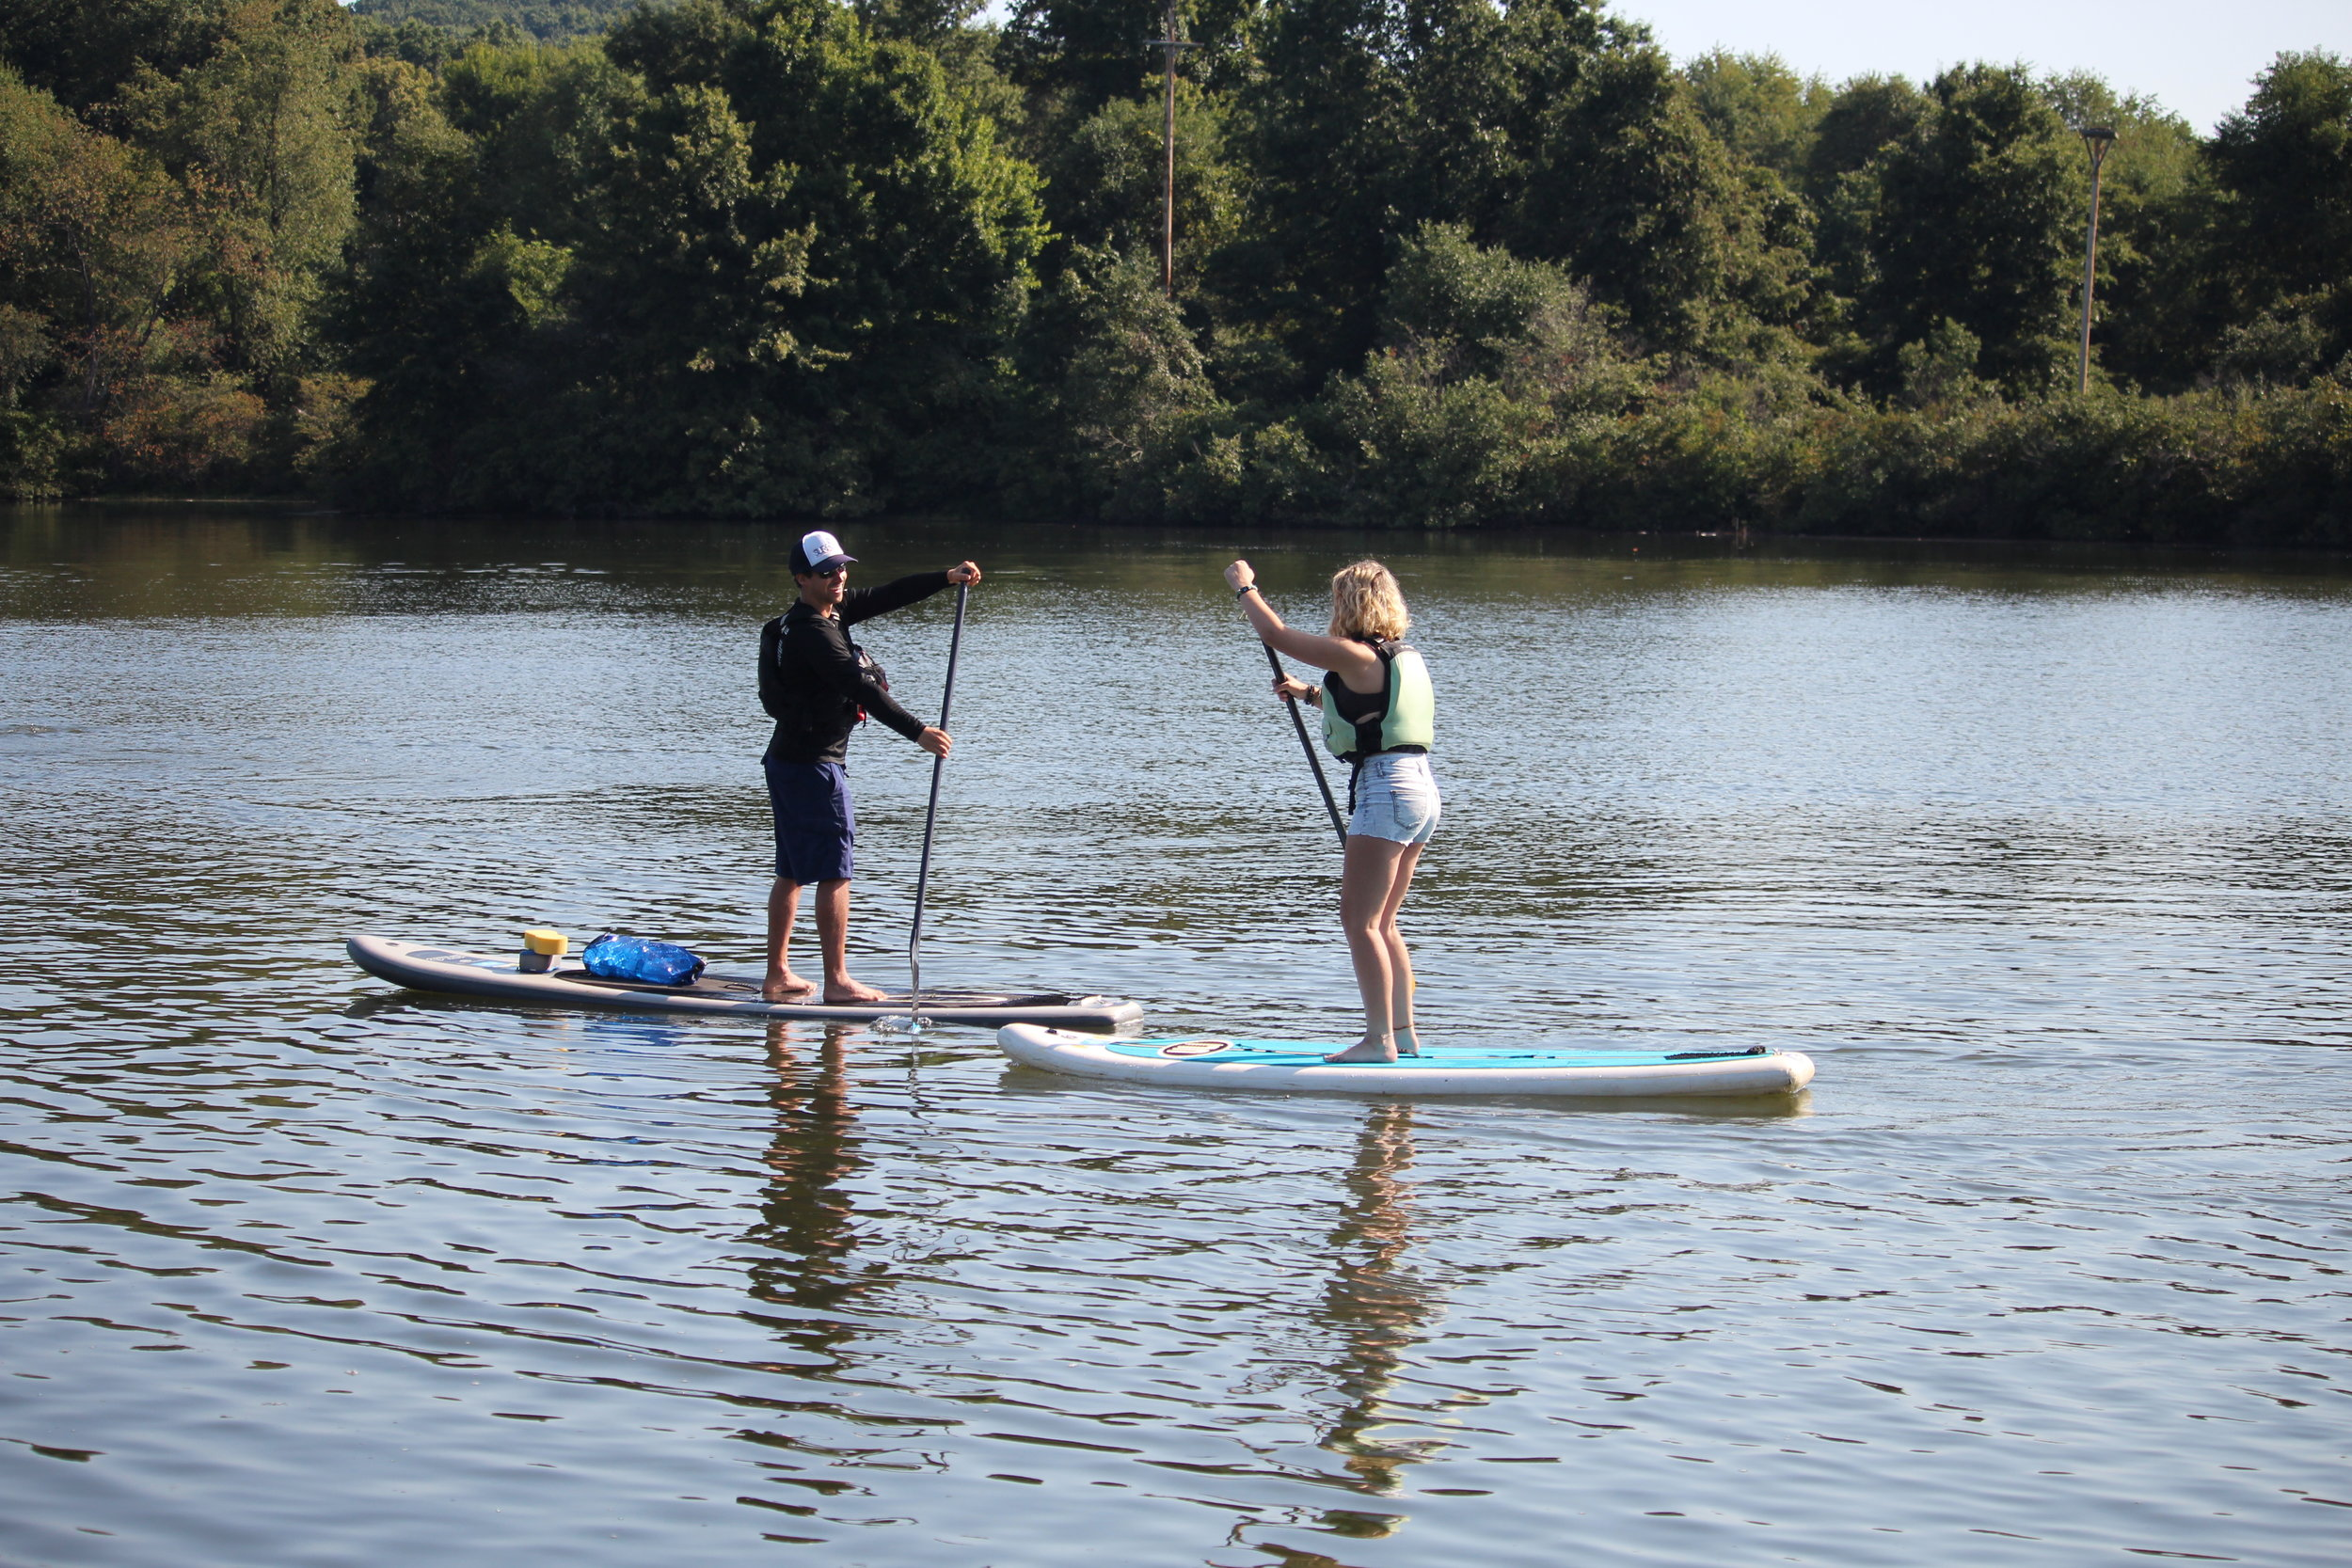 INSTRUCTOR CERTIFICATION - Get certified to teach standup paddleboarding courses through our PSUPA trainings!